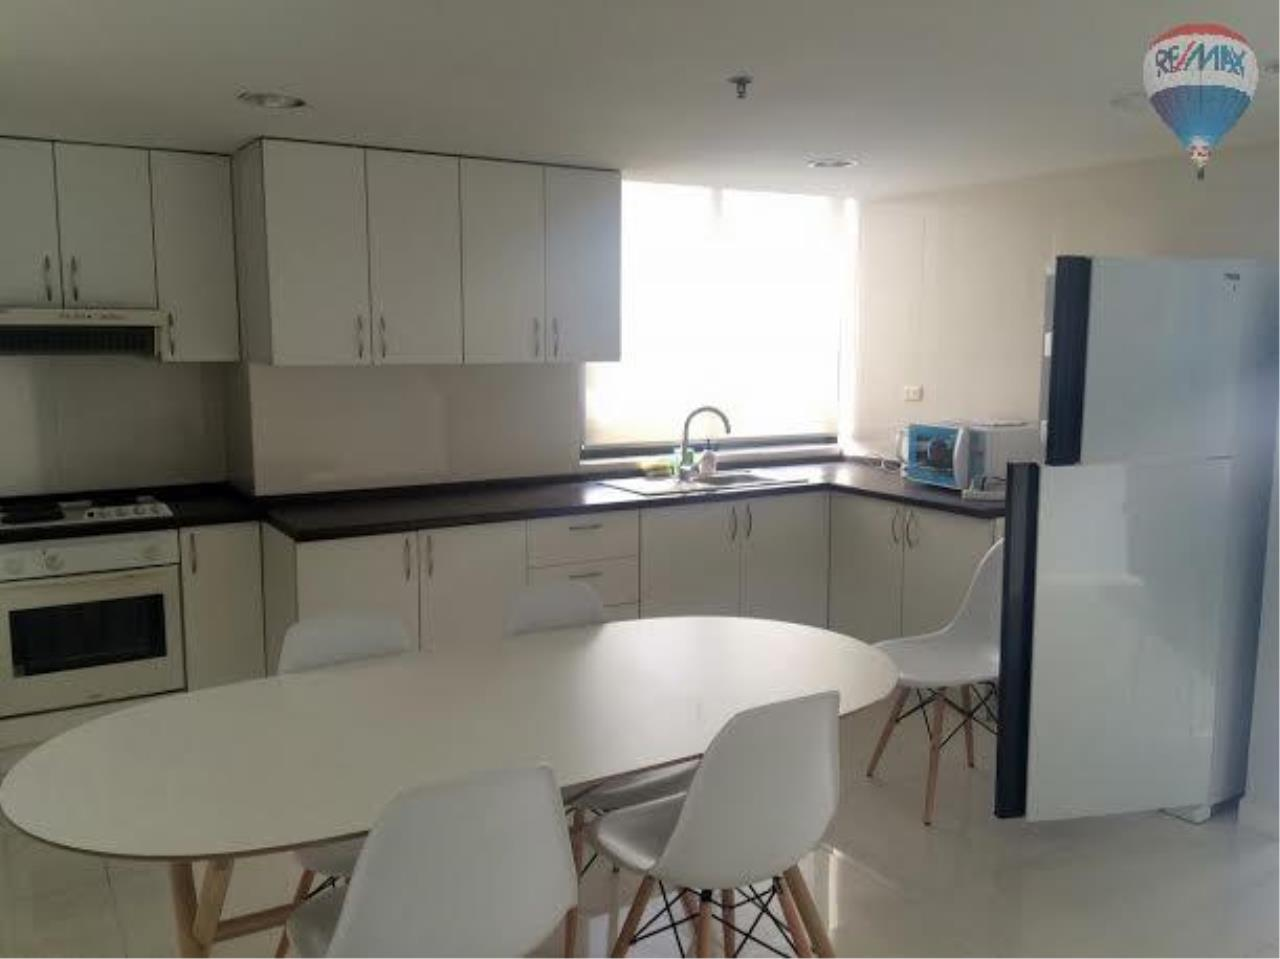 RE/MAX Properties Agency's 2 bedroom 130 Sq.M. for rent at Lake Green 3